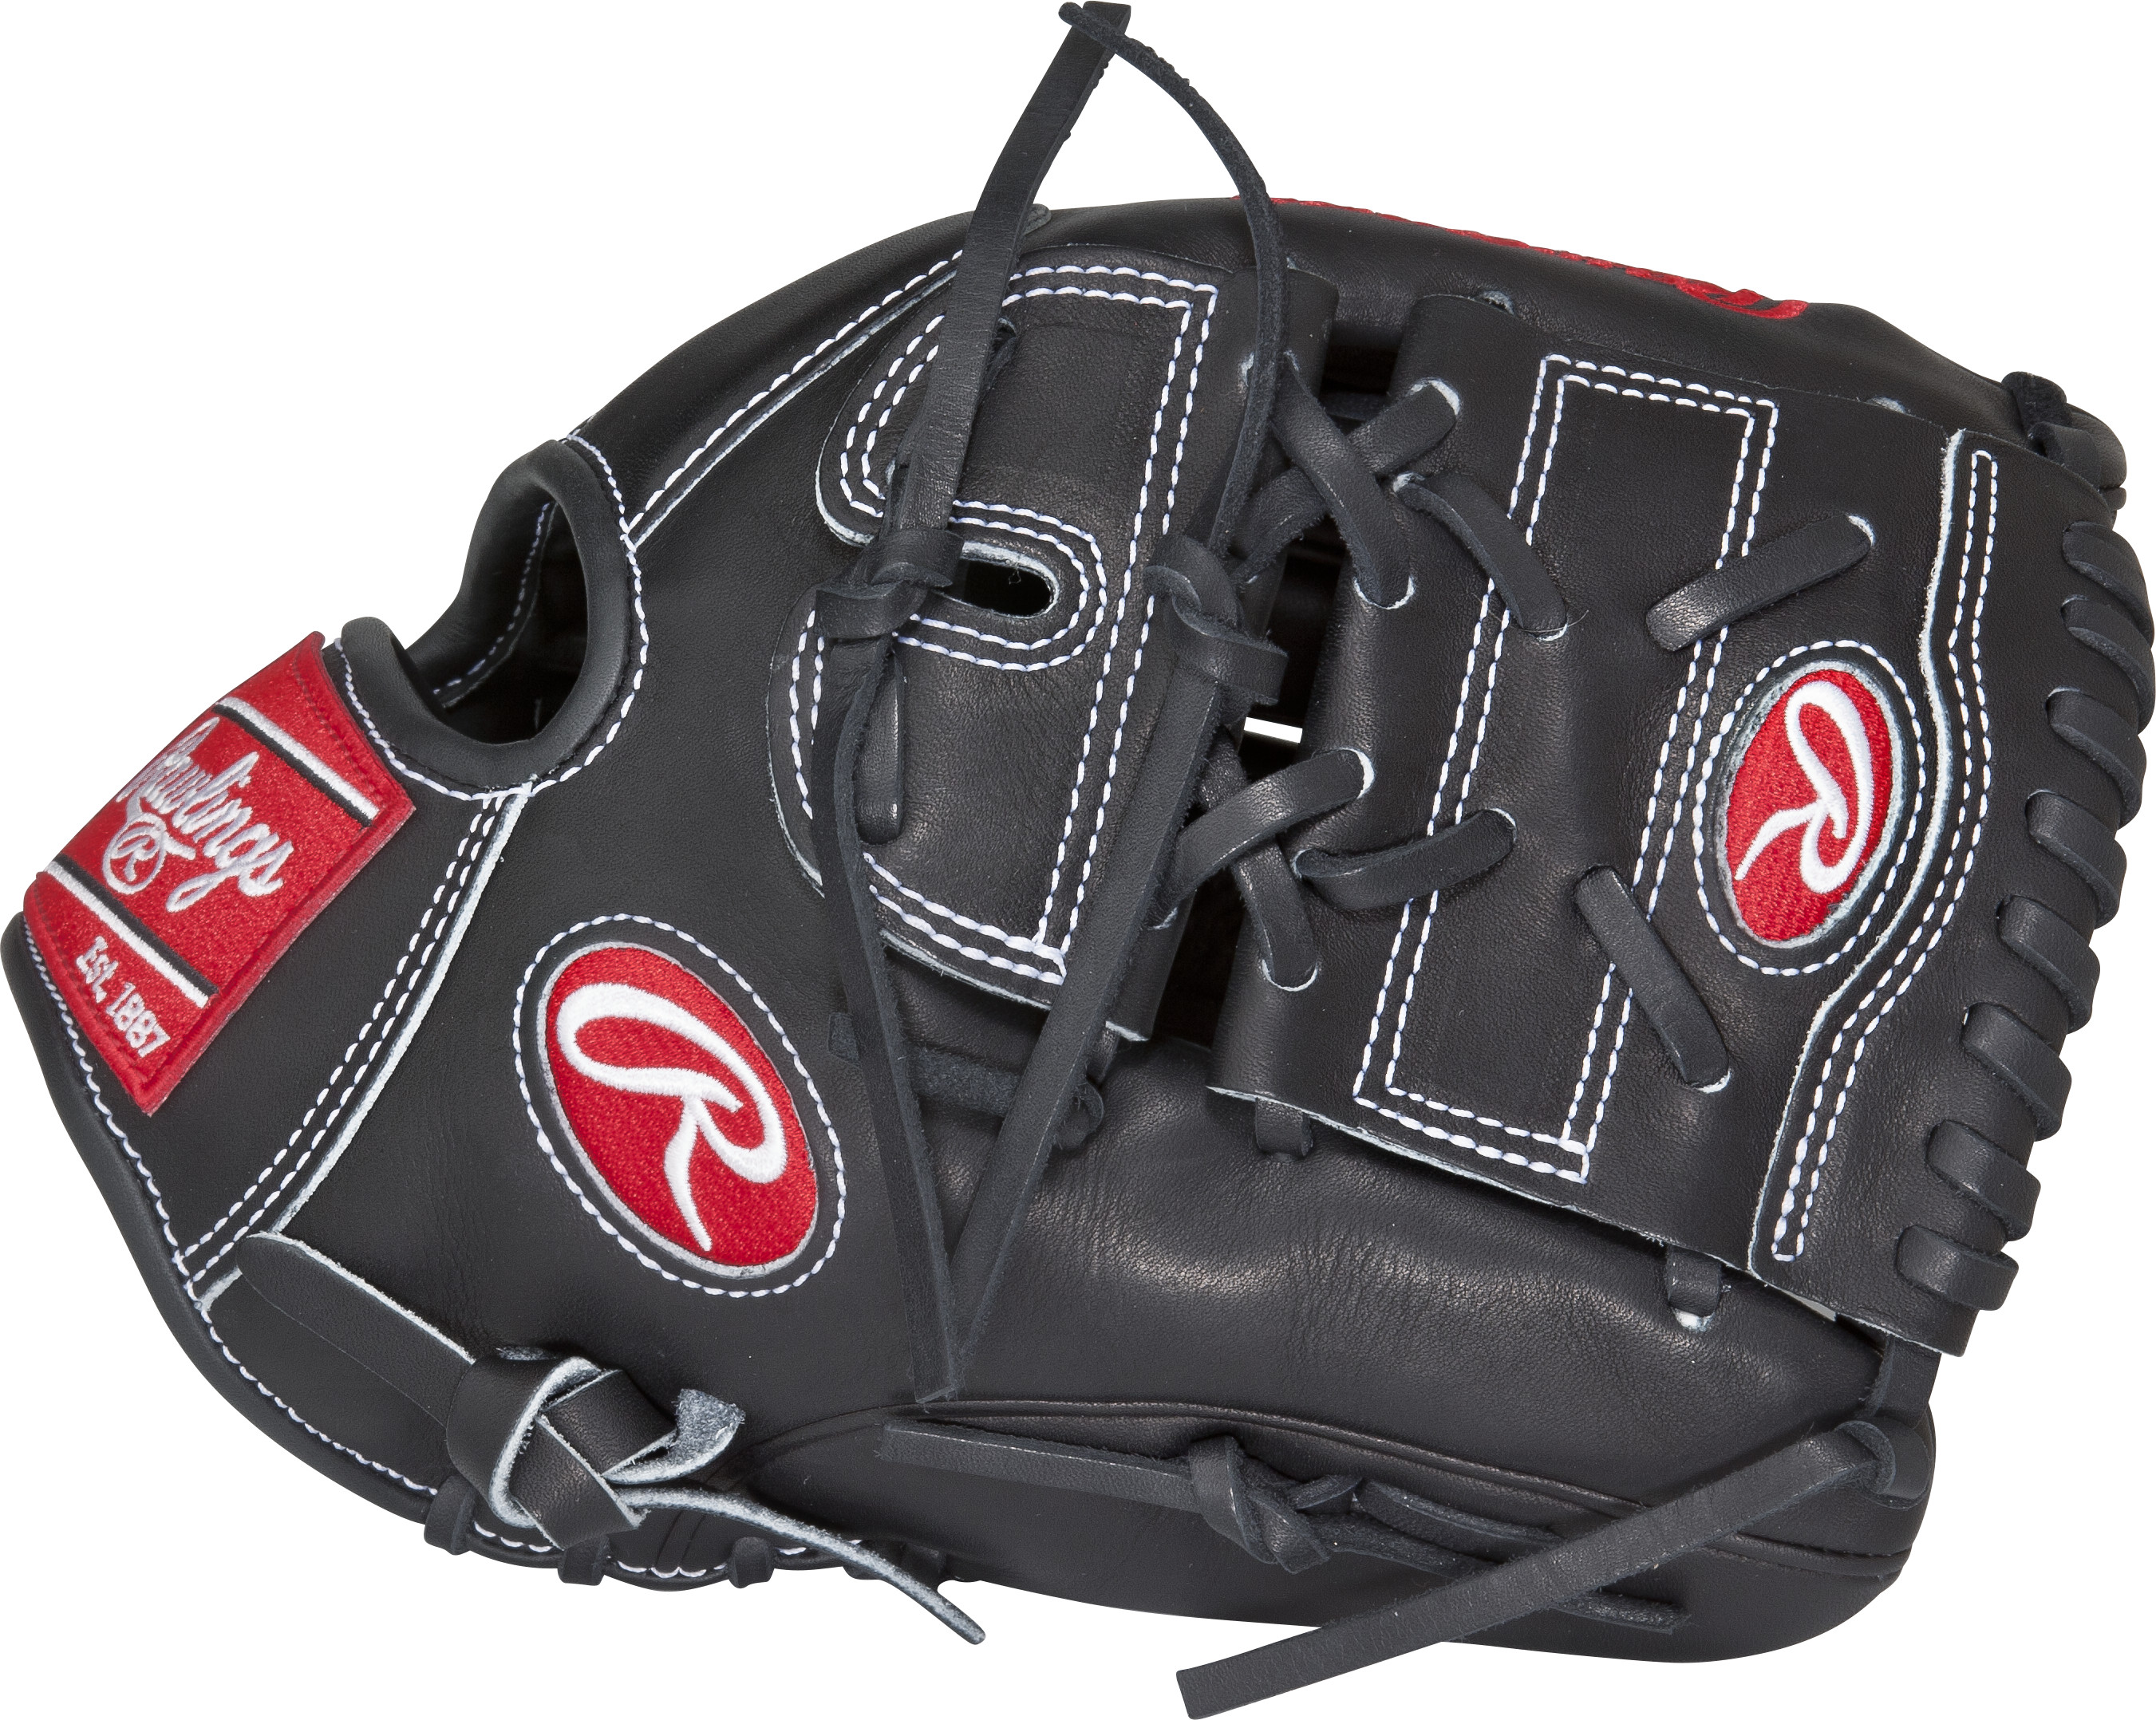 http://www.bestbatdeals.com/images/gloves/rawlings/PRO206-9JB_thumb.jpg